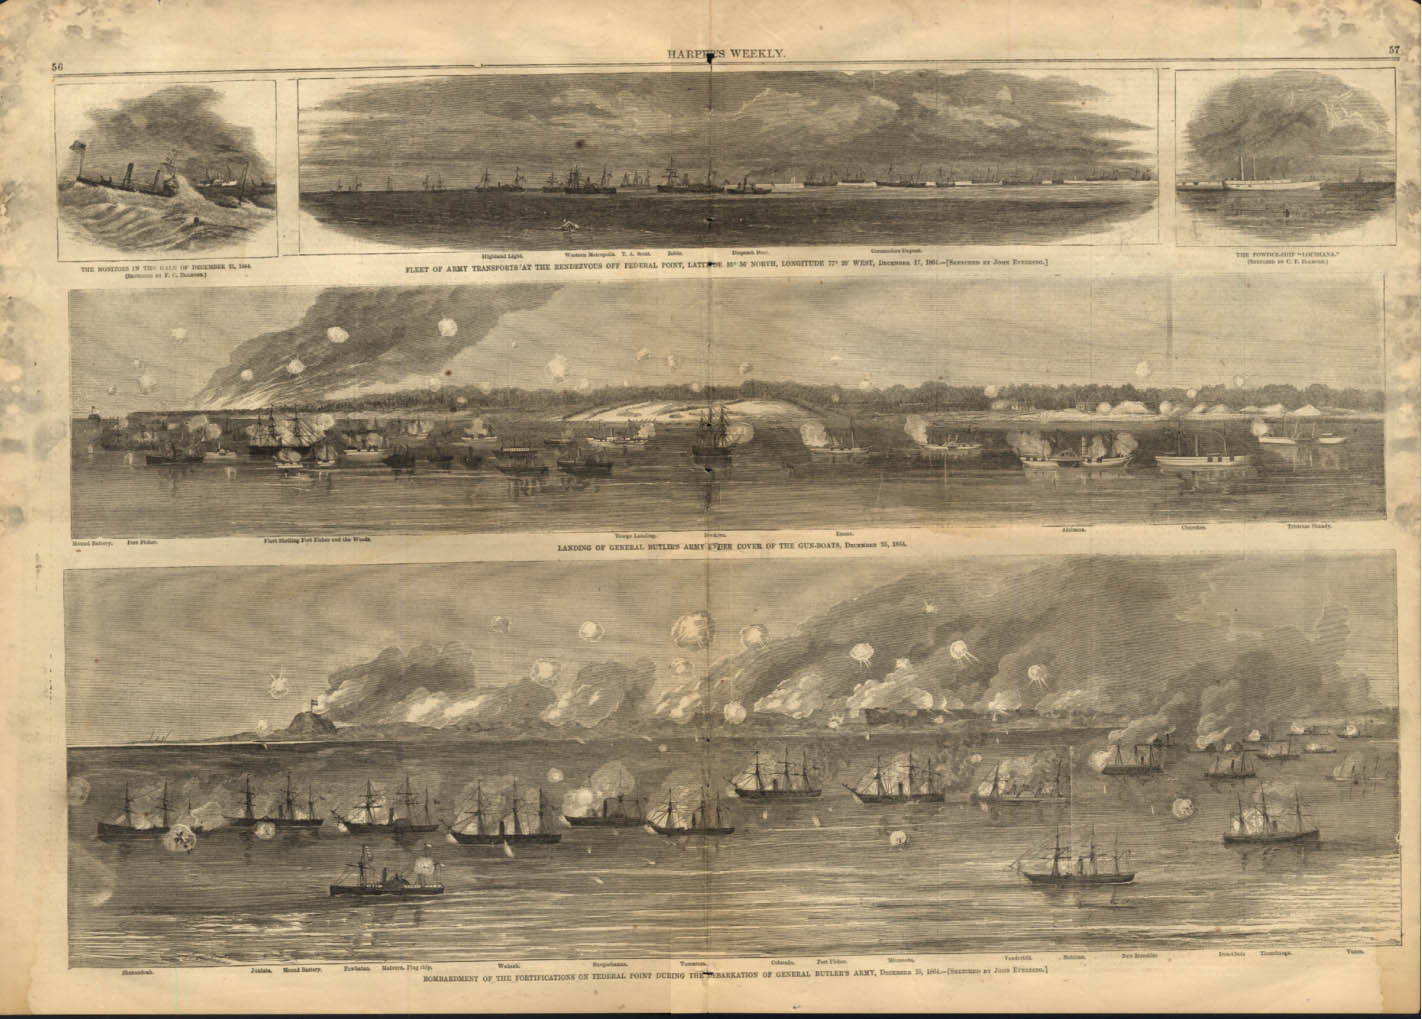 Gen Butler's Invasion at Federal Point NC 1864 Harper's Weekly spread 1/28 1865